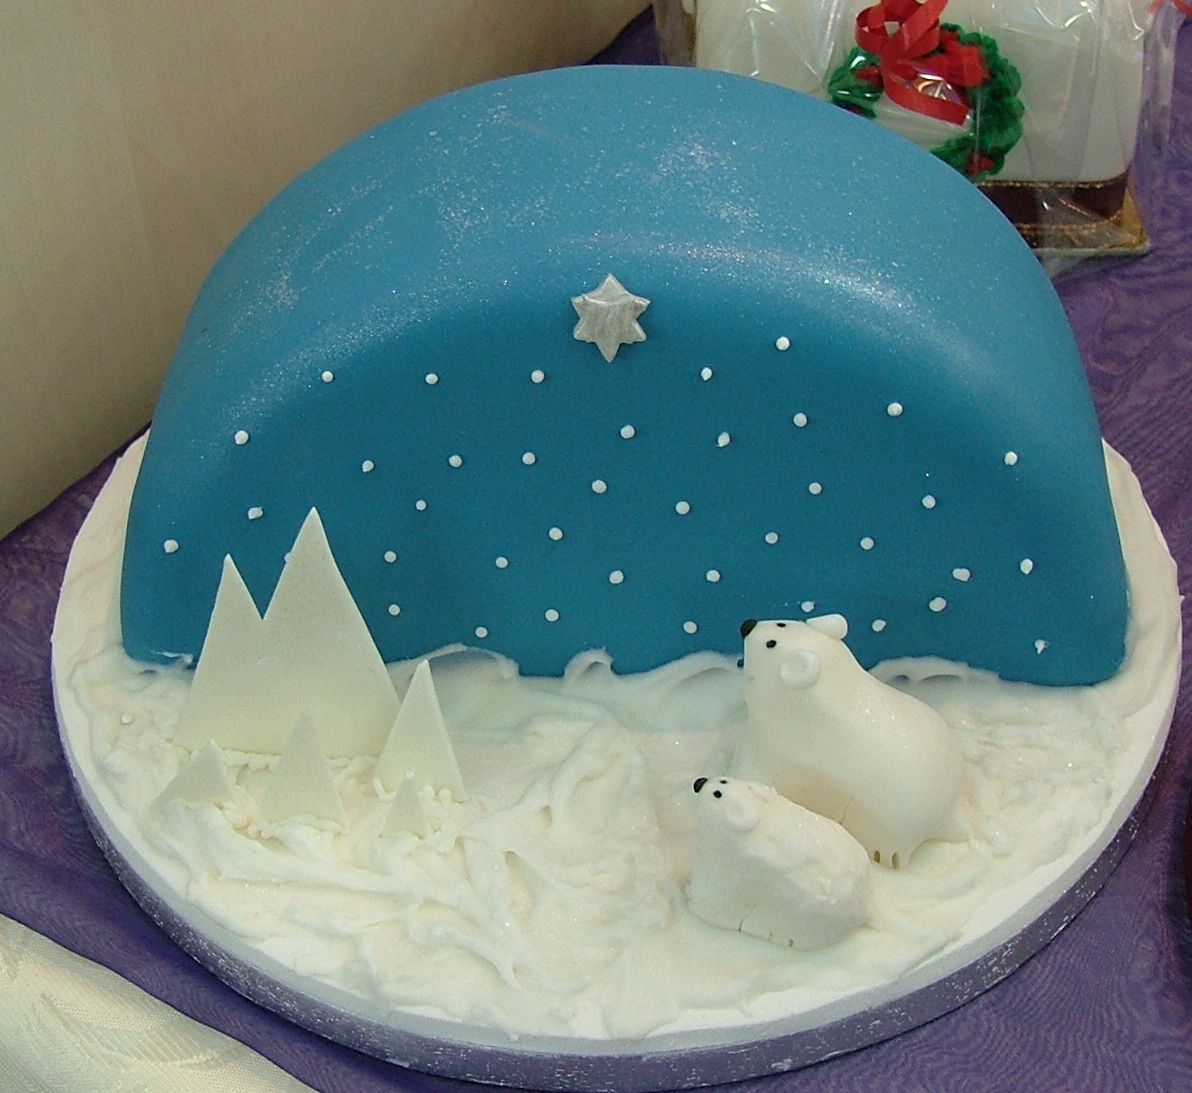 Seasonal Cakes Too Nice To Slice